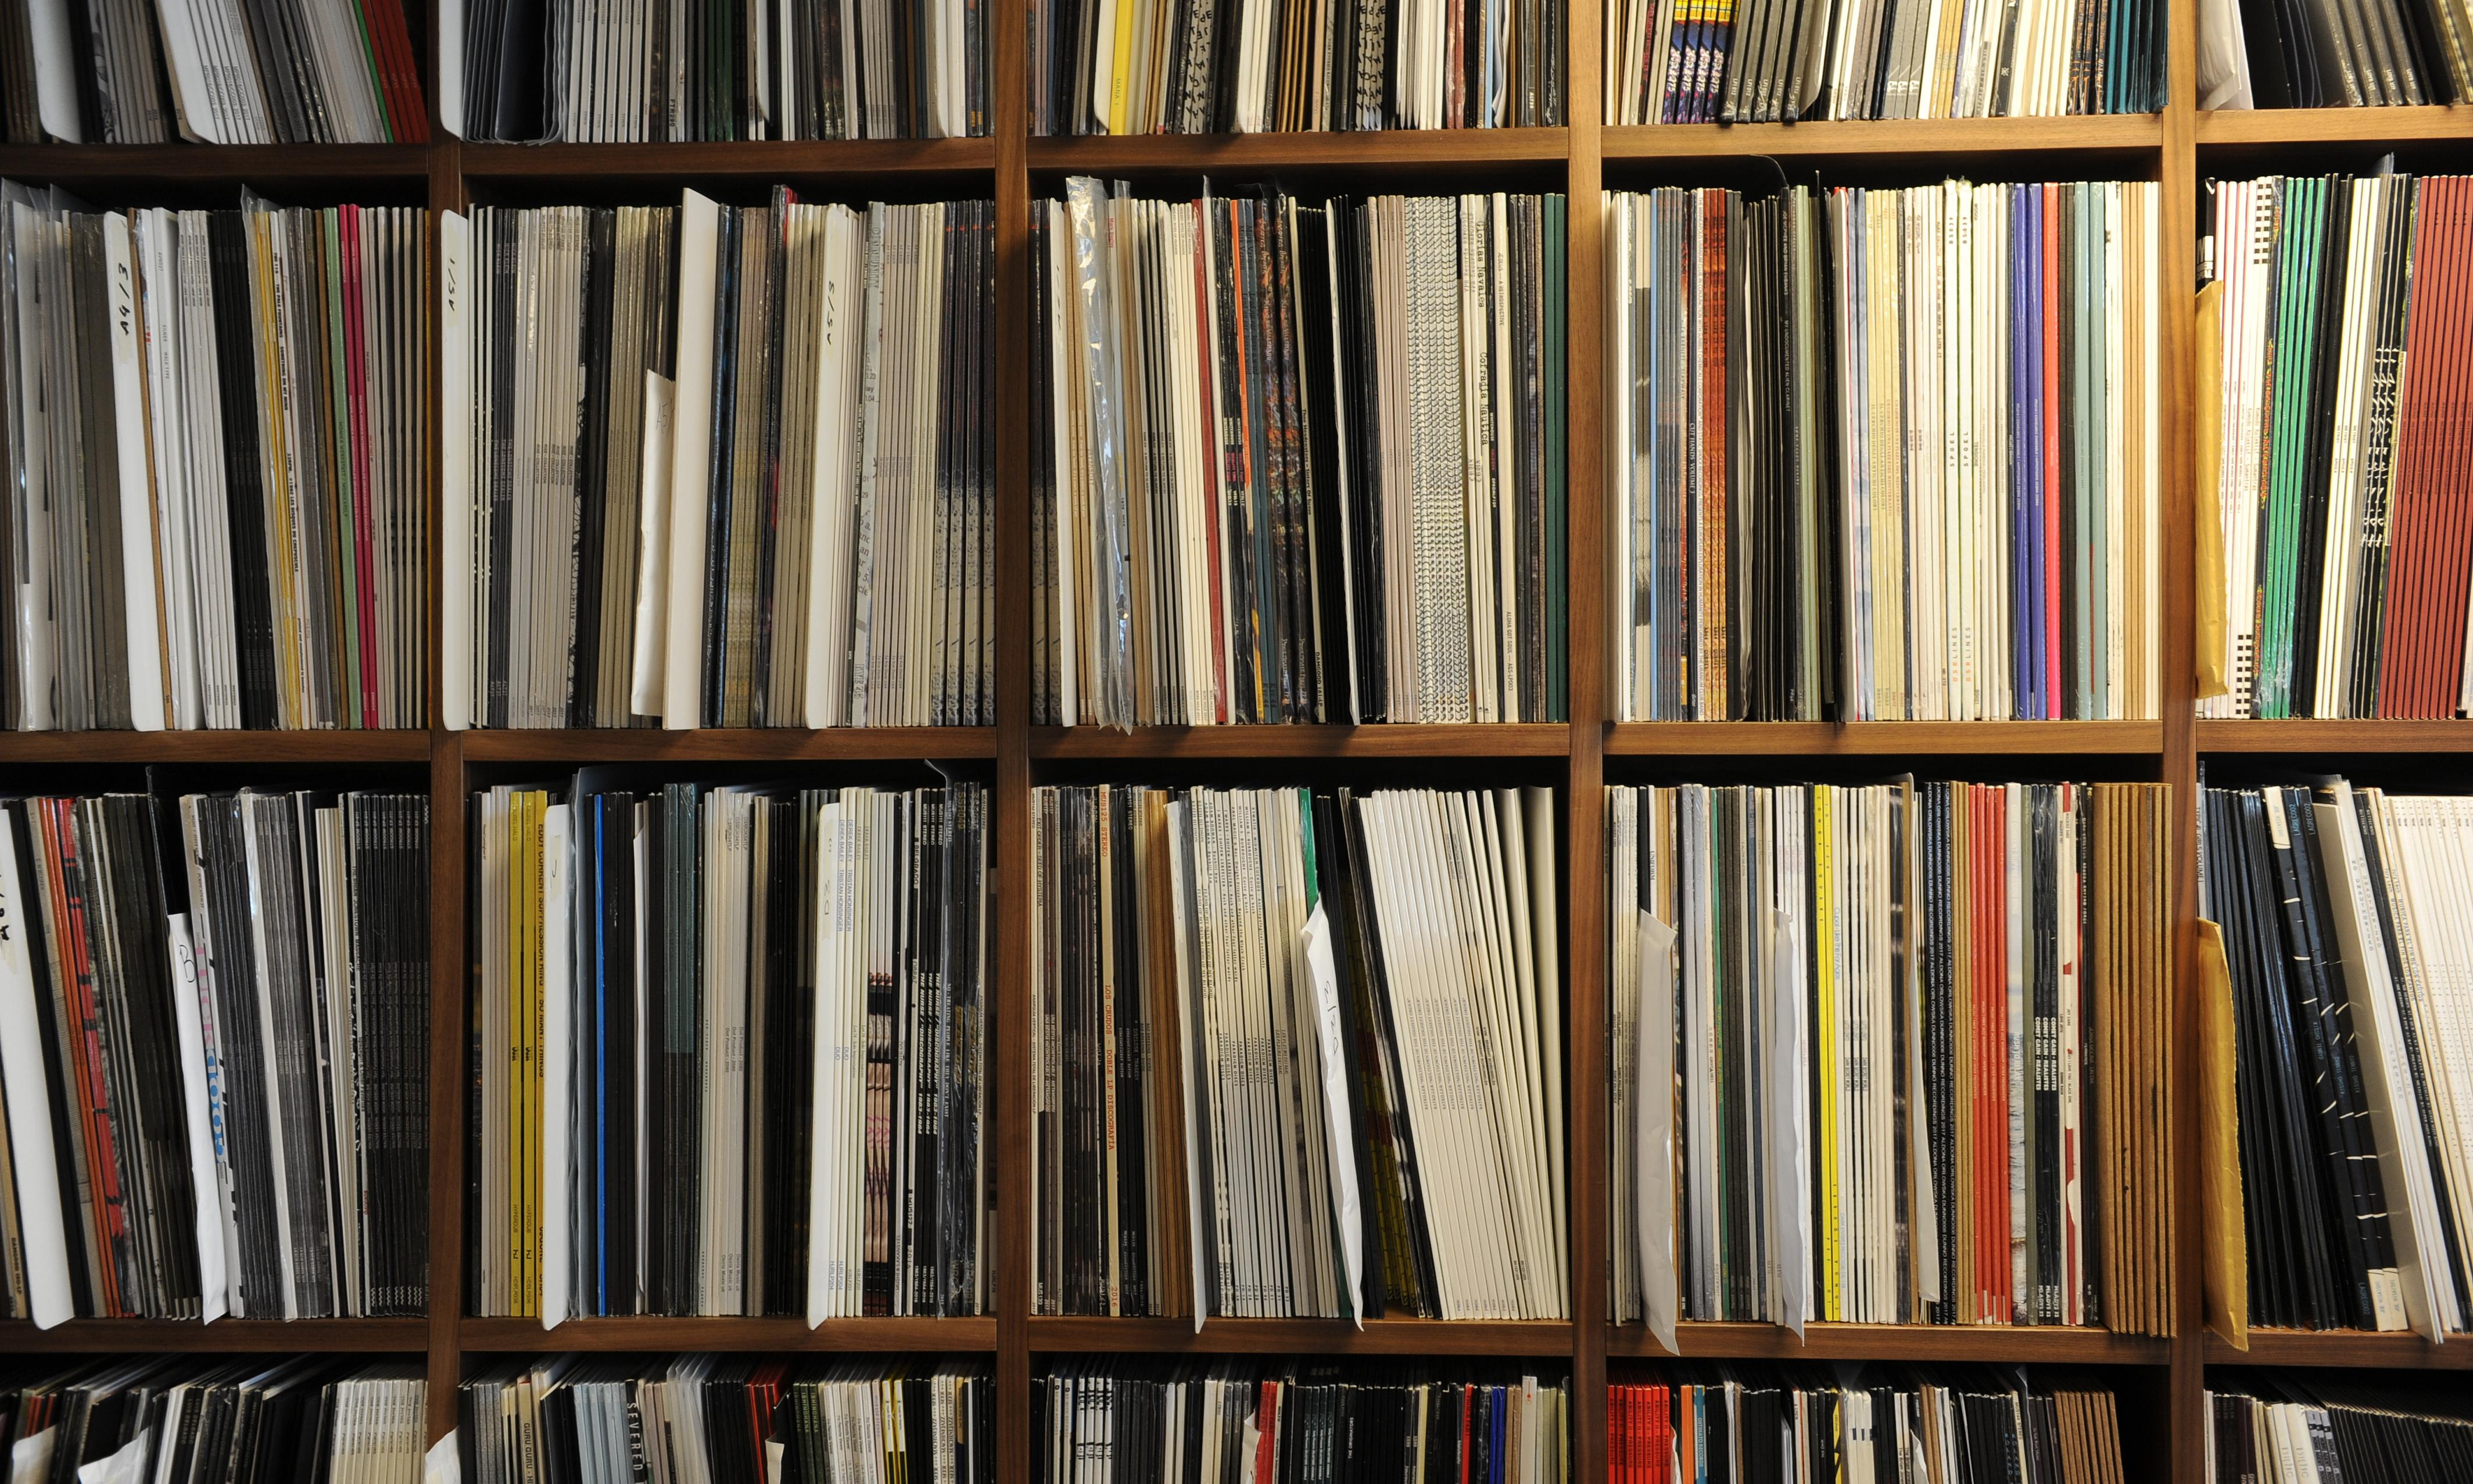 Vinyl revival: is there an environmental cost to record sales?